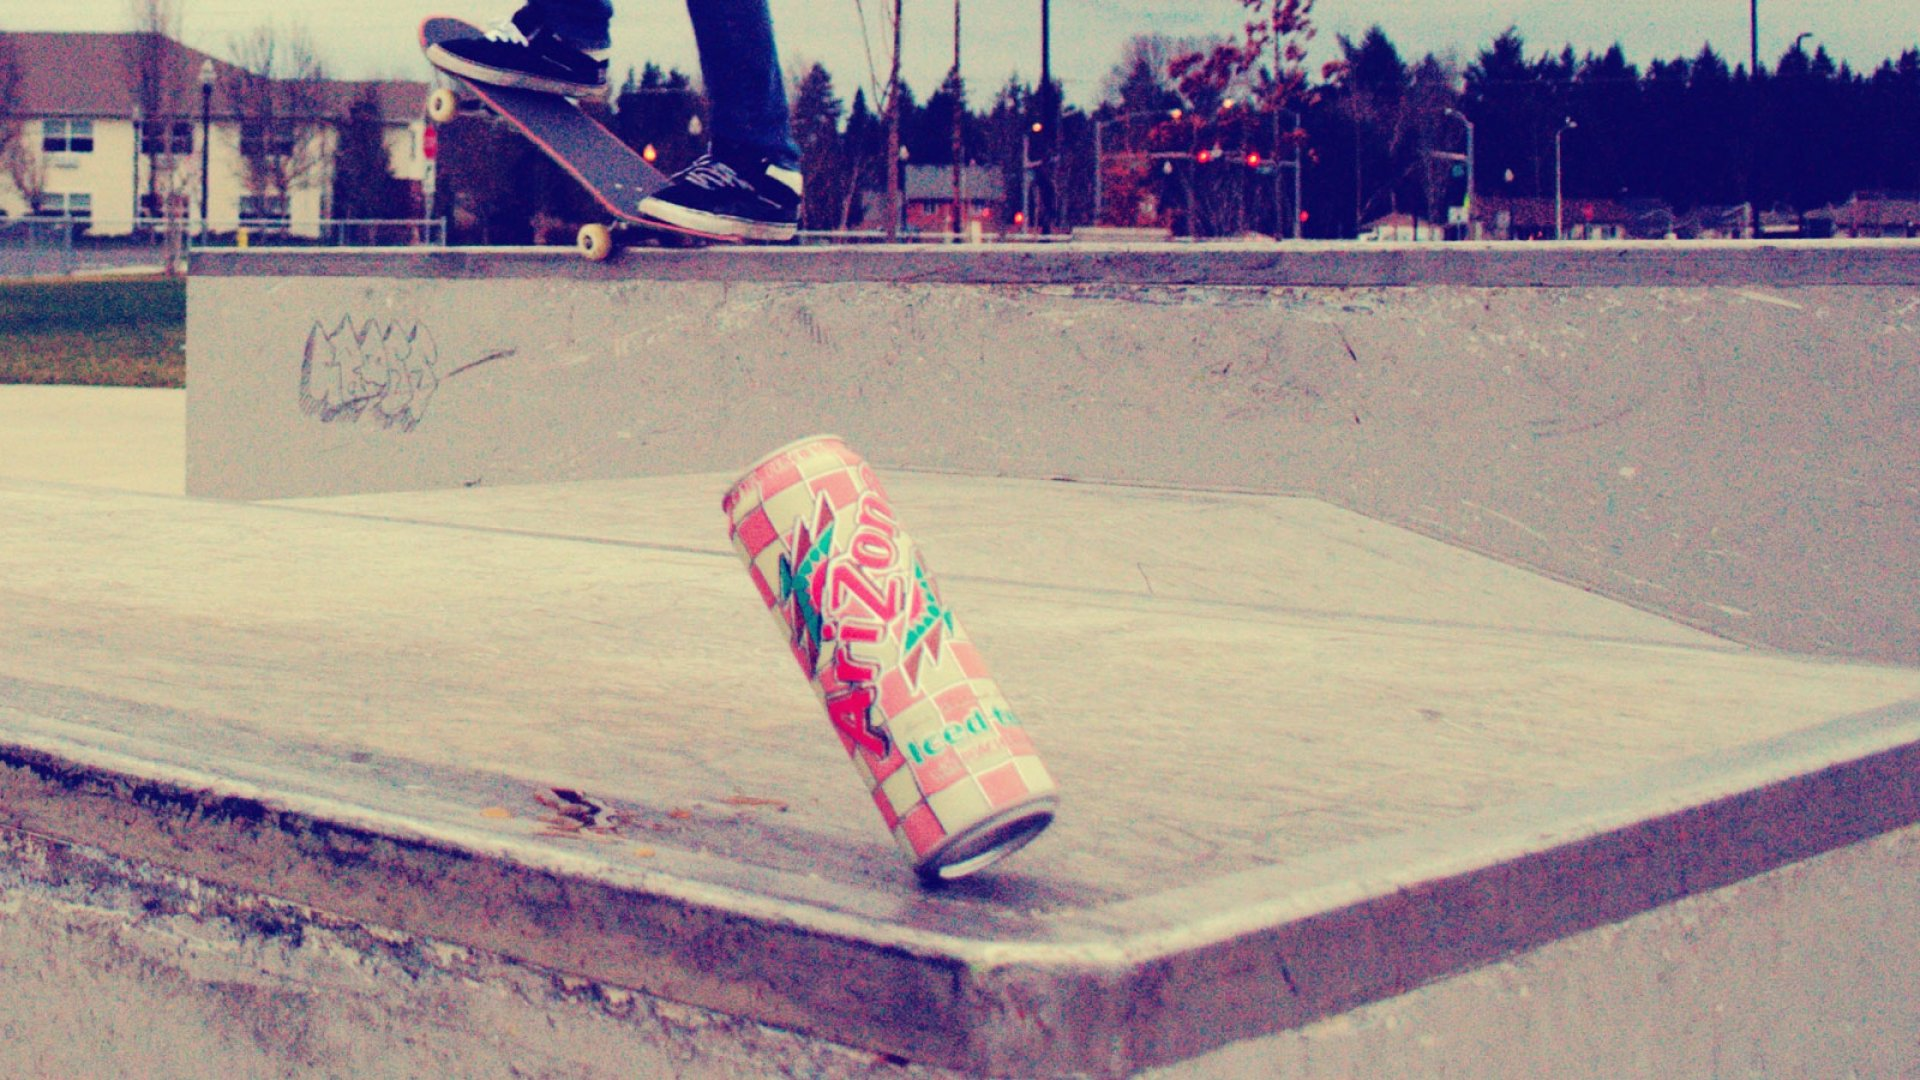 Arizona Iced Tea Hit the Streets for Research, Then Innovated Against the Competition